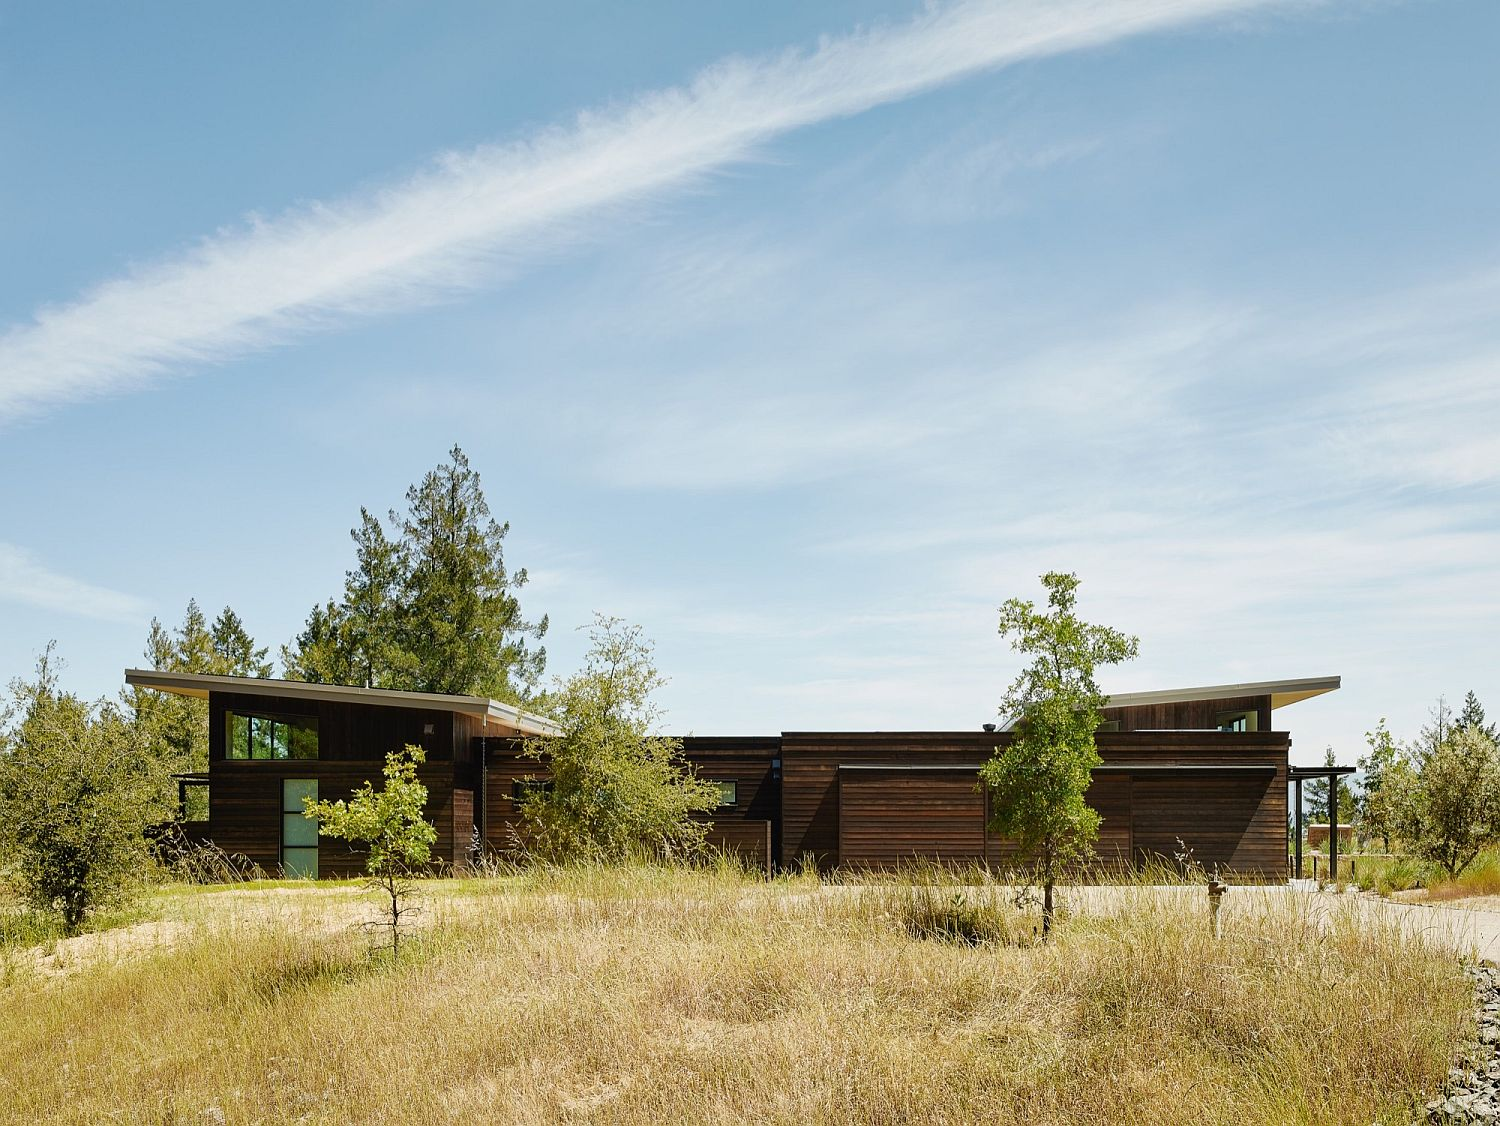 Beautiful Sonoma Country landscape becomes one with the breezy home